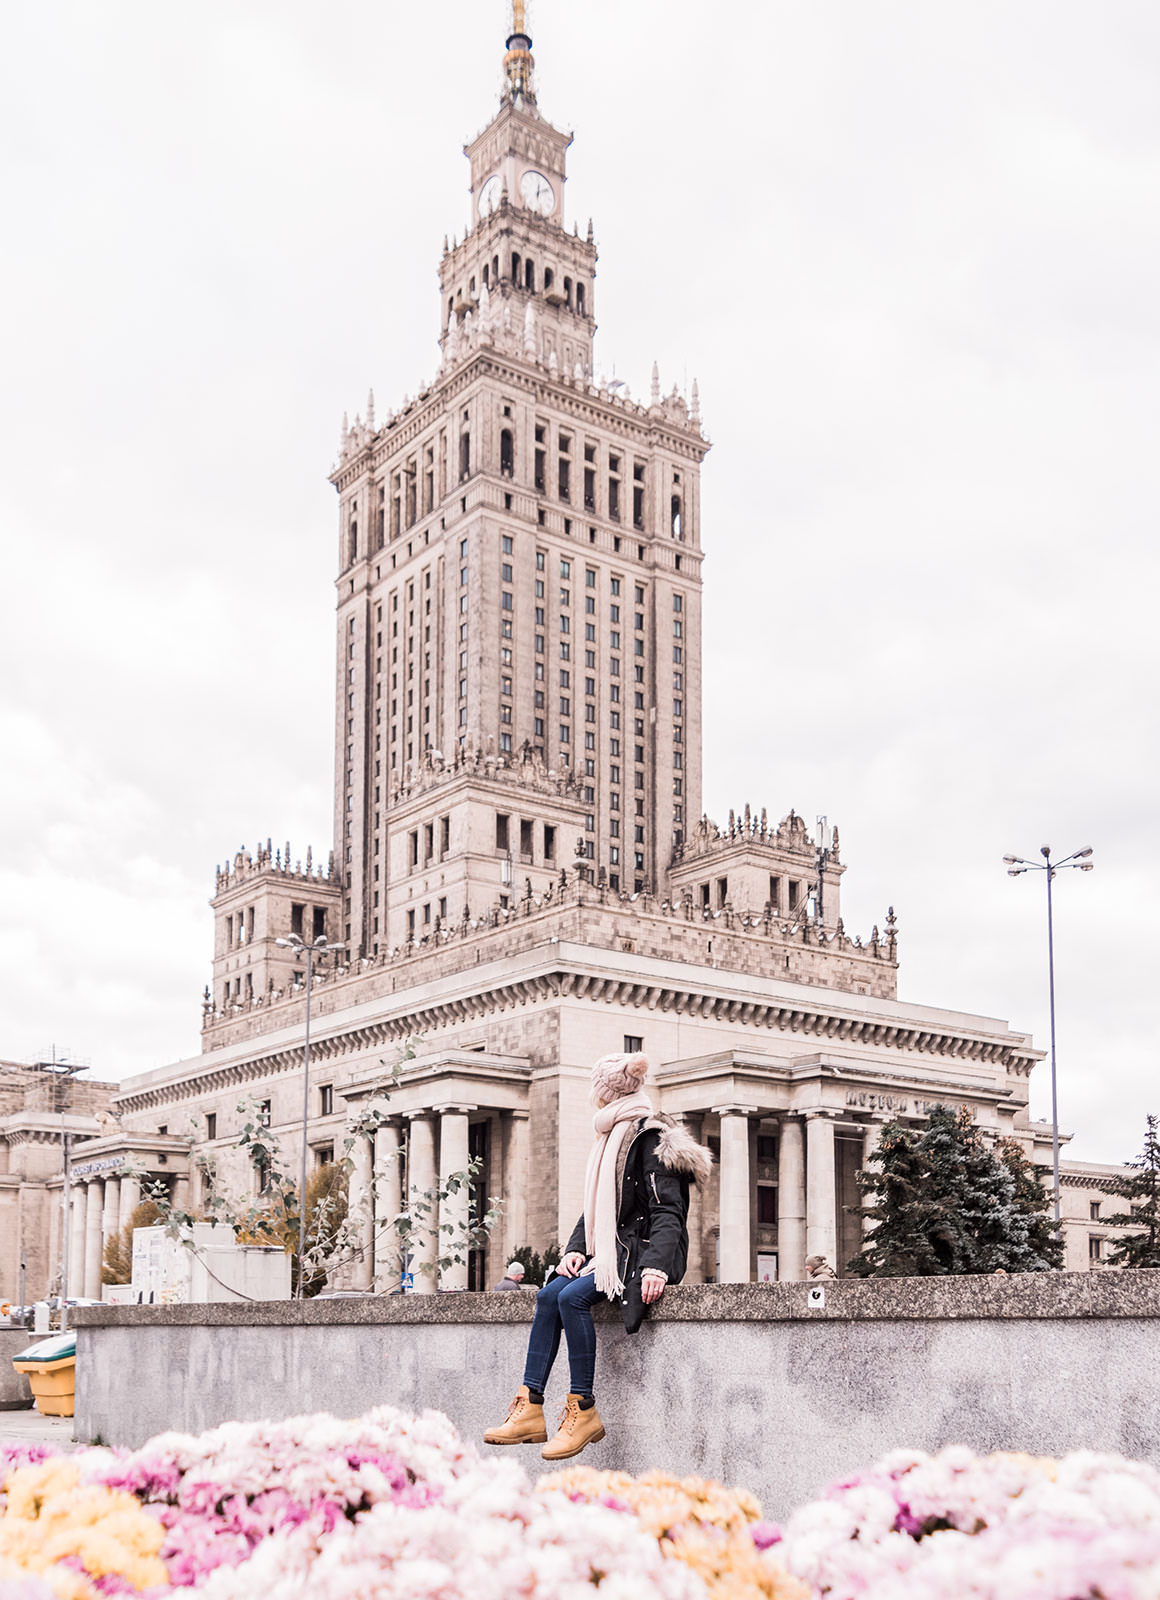 Two Days in Warsaw